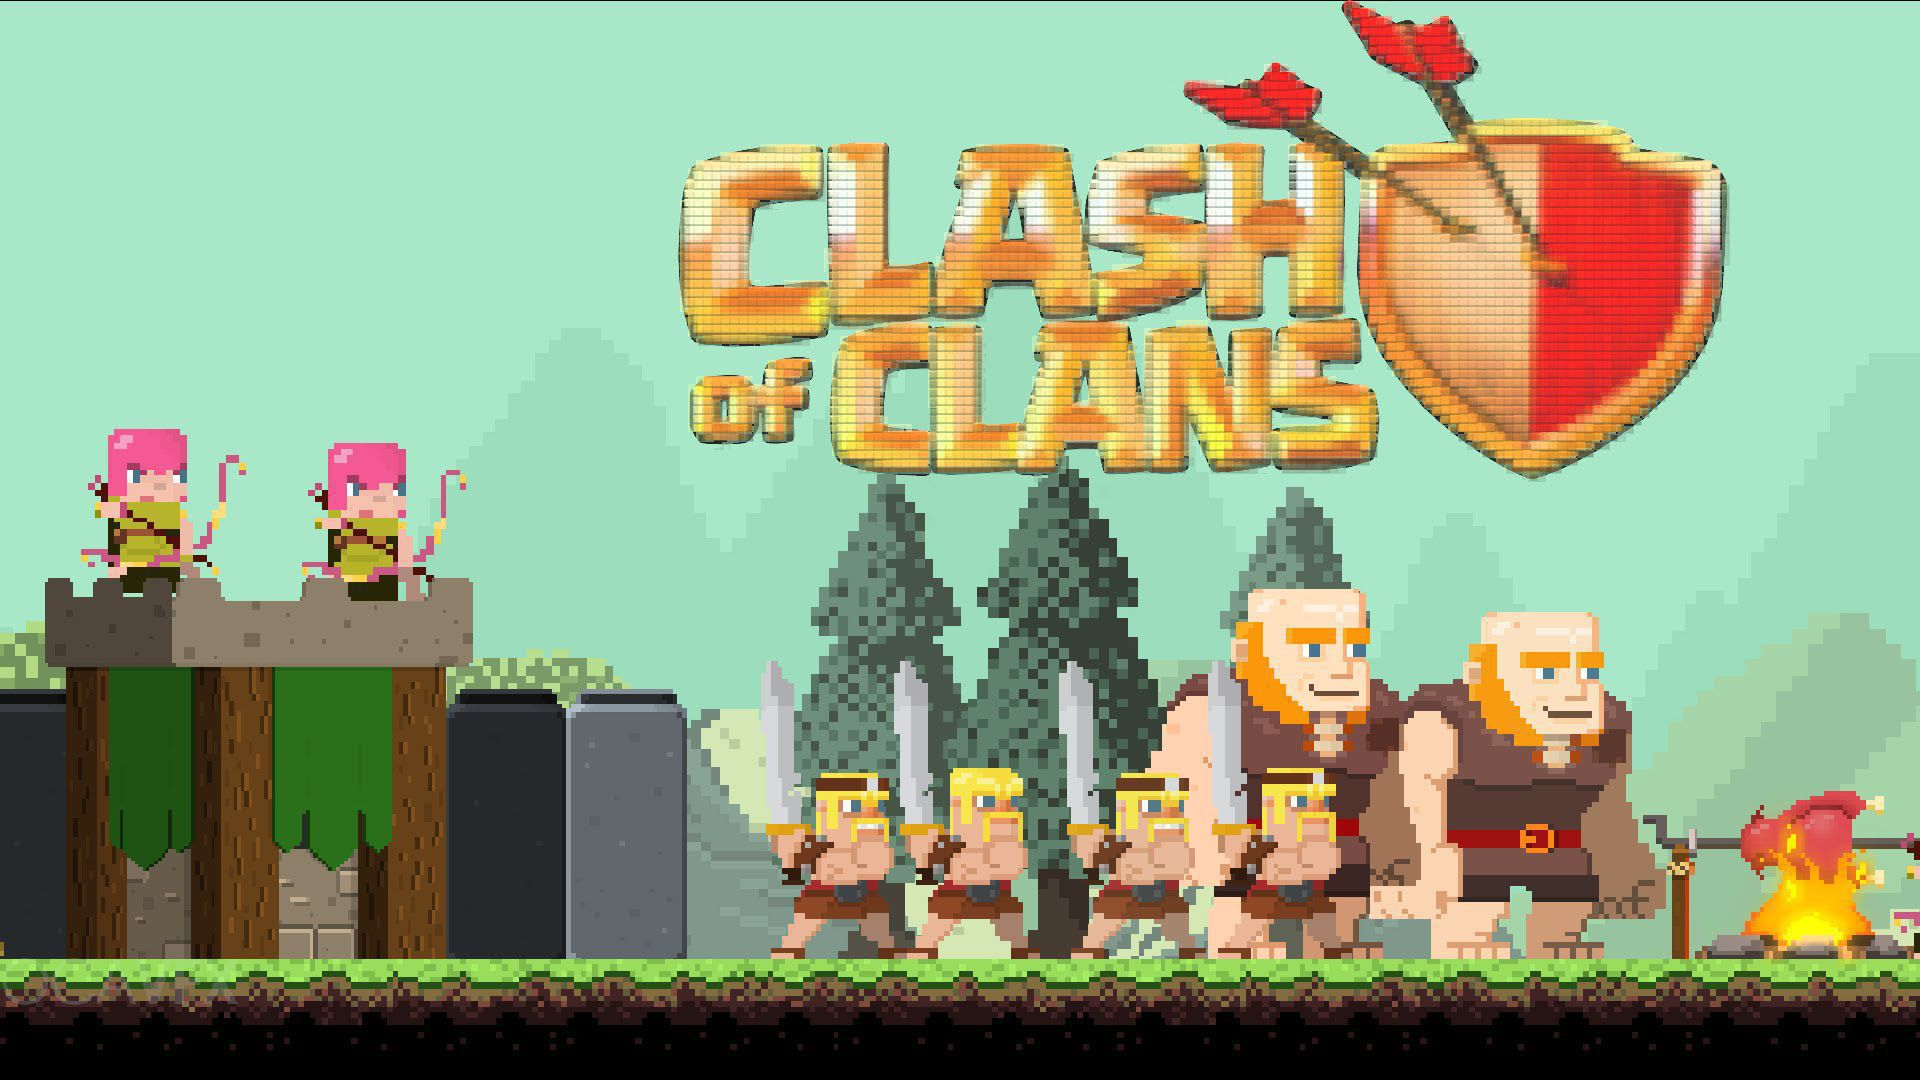 Wallpaper Of Clash Of Clans: Clash Of Clans Wallpapers Backgrounds